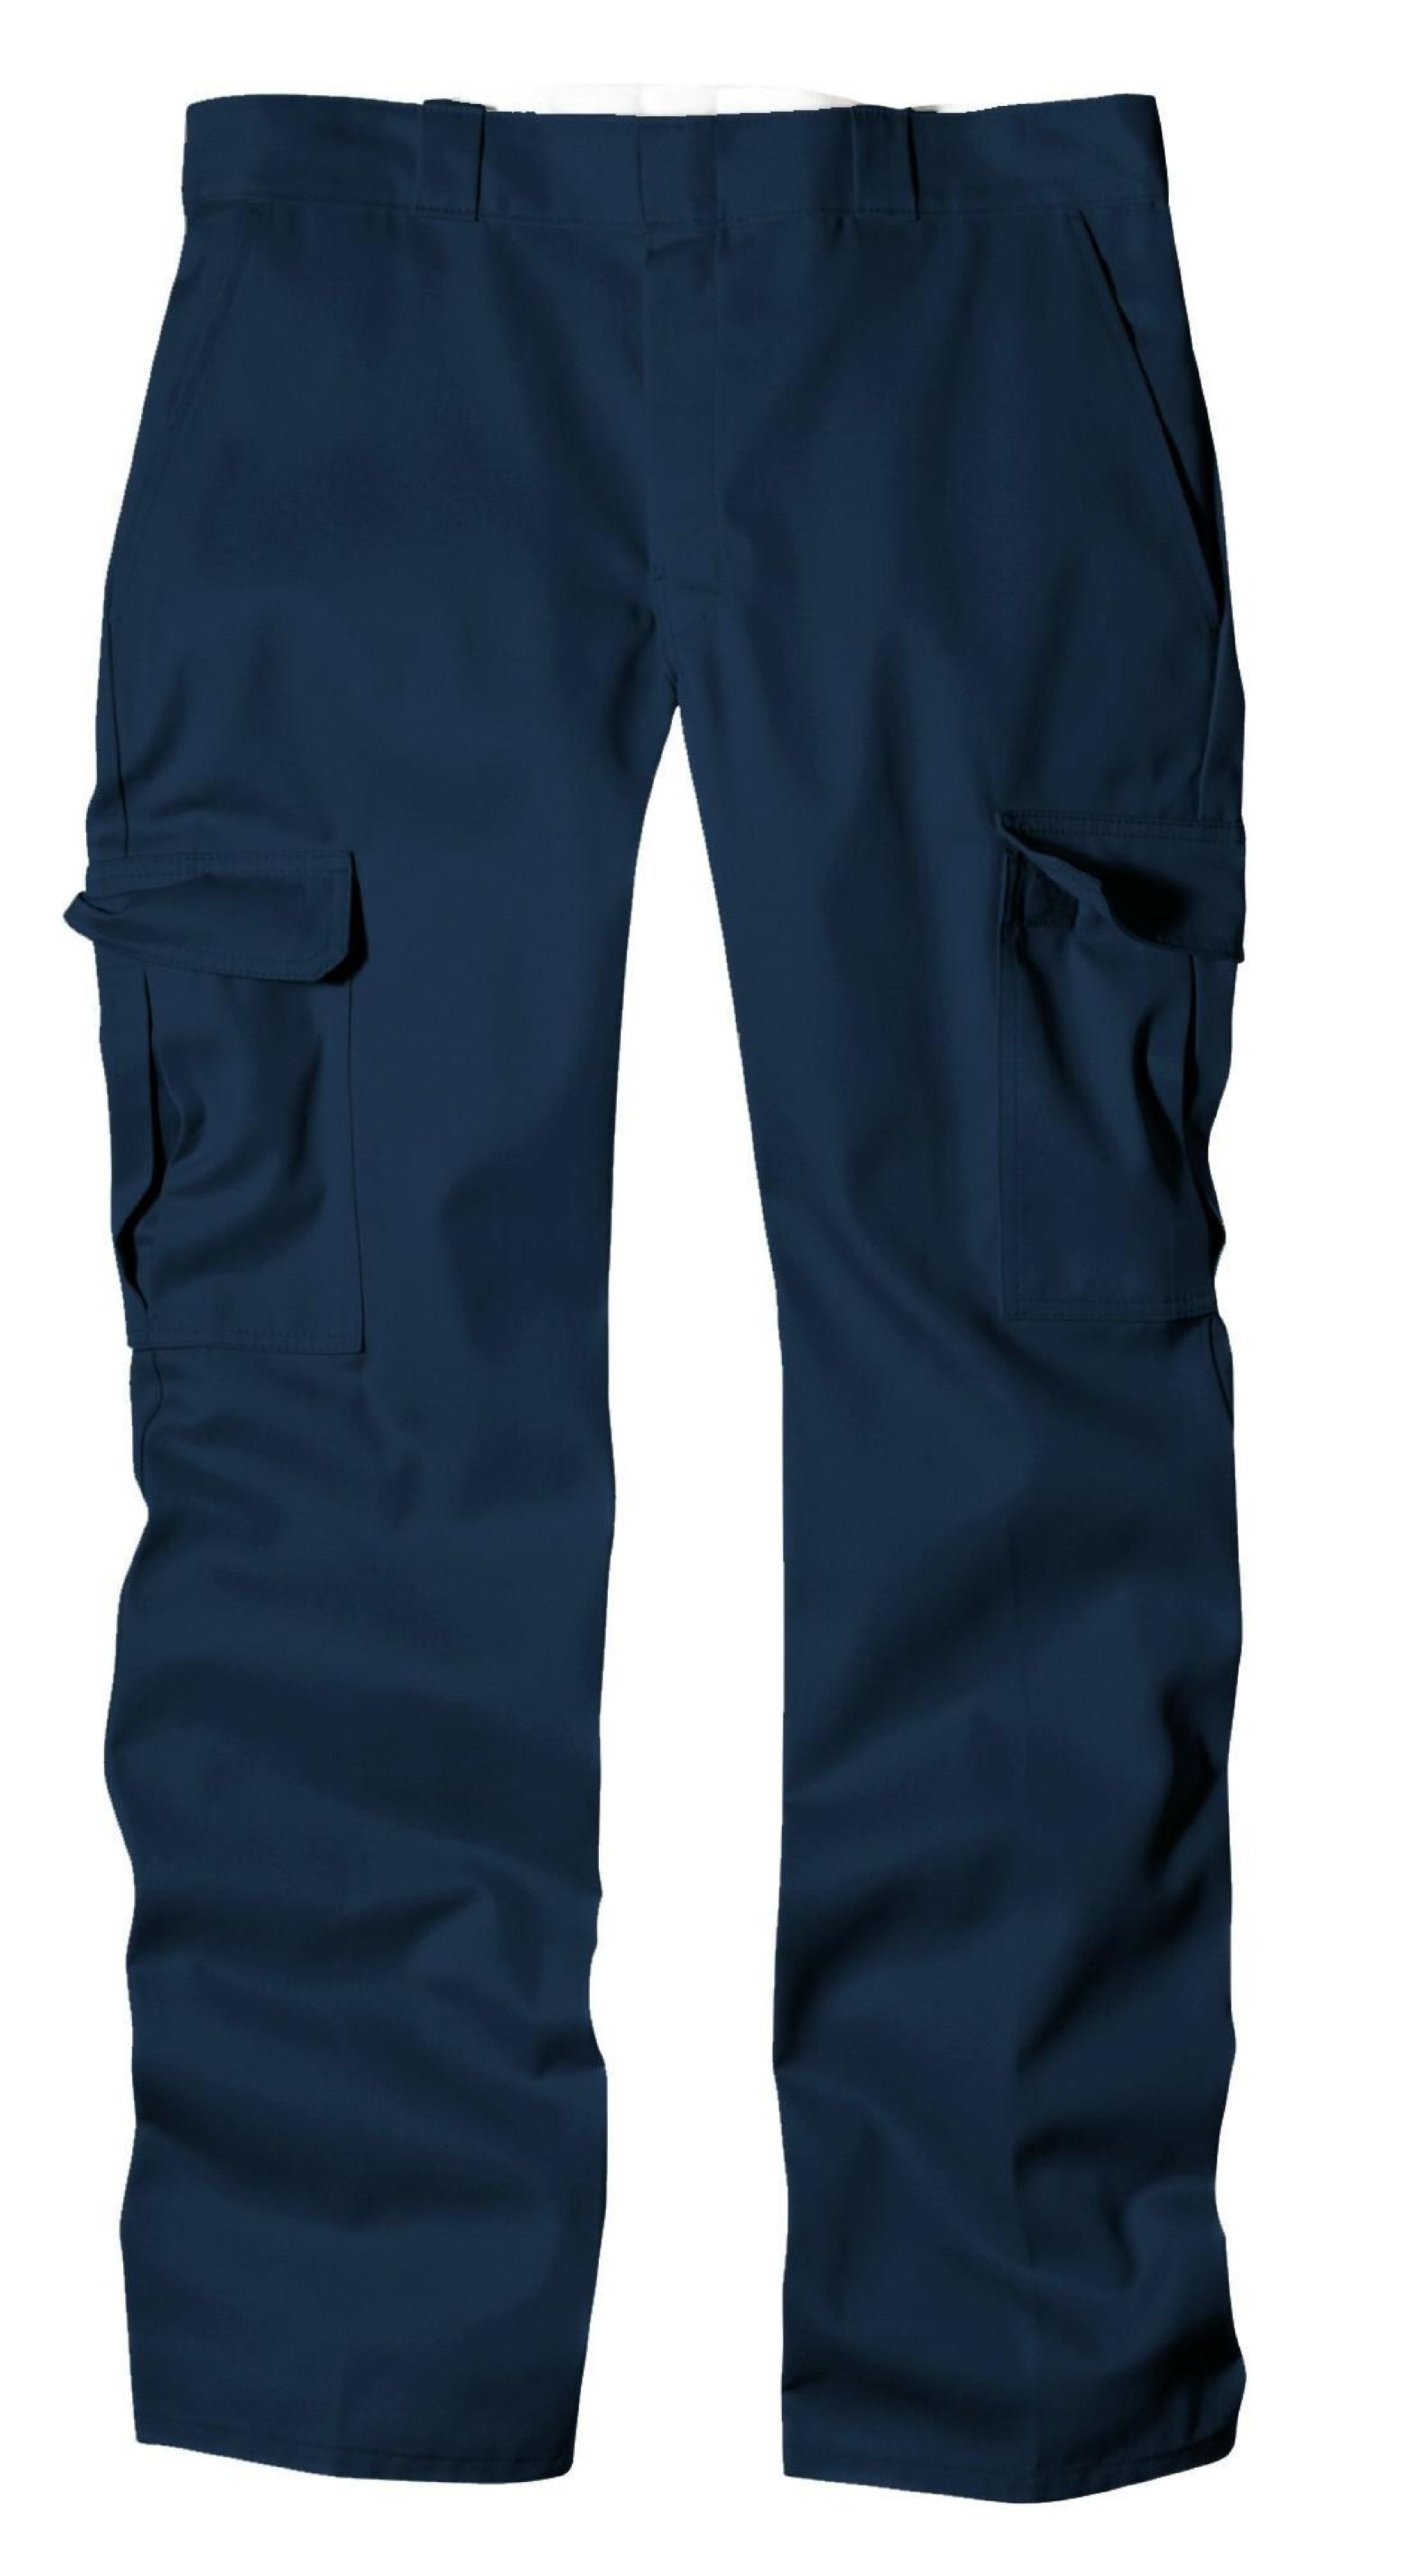 Dickies Men's Relaxed Straight Fit Cargo Work Pant, Dark Navy, 34x34